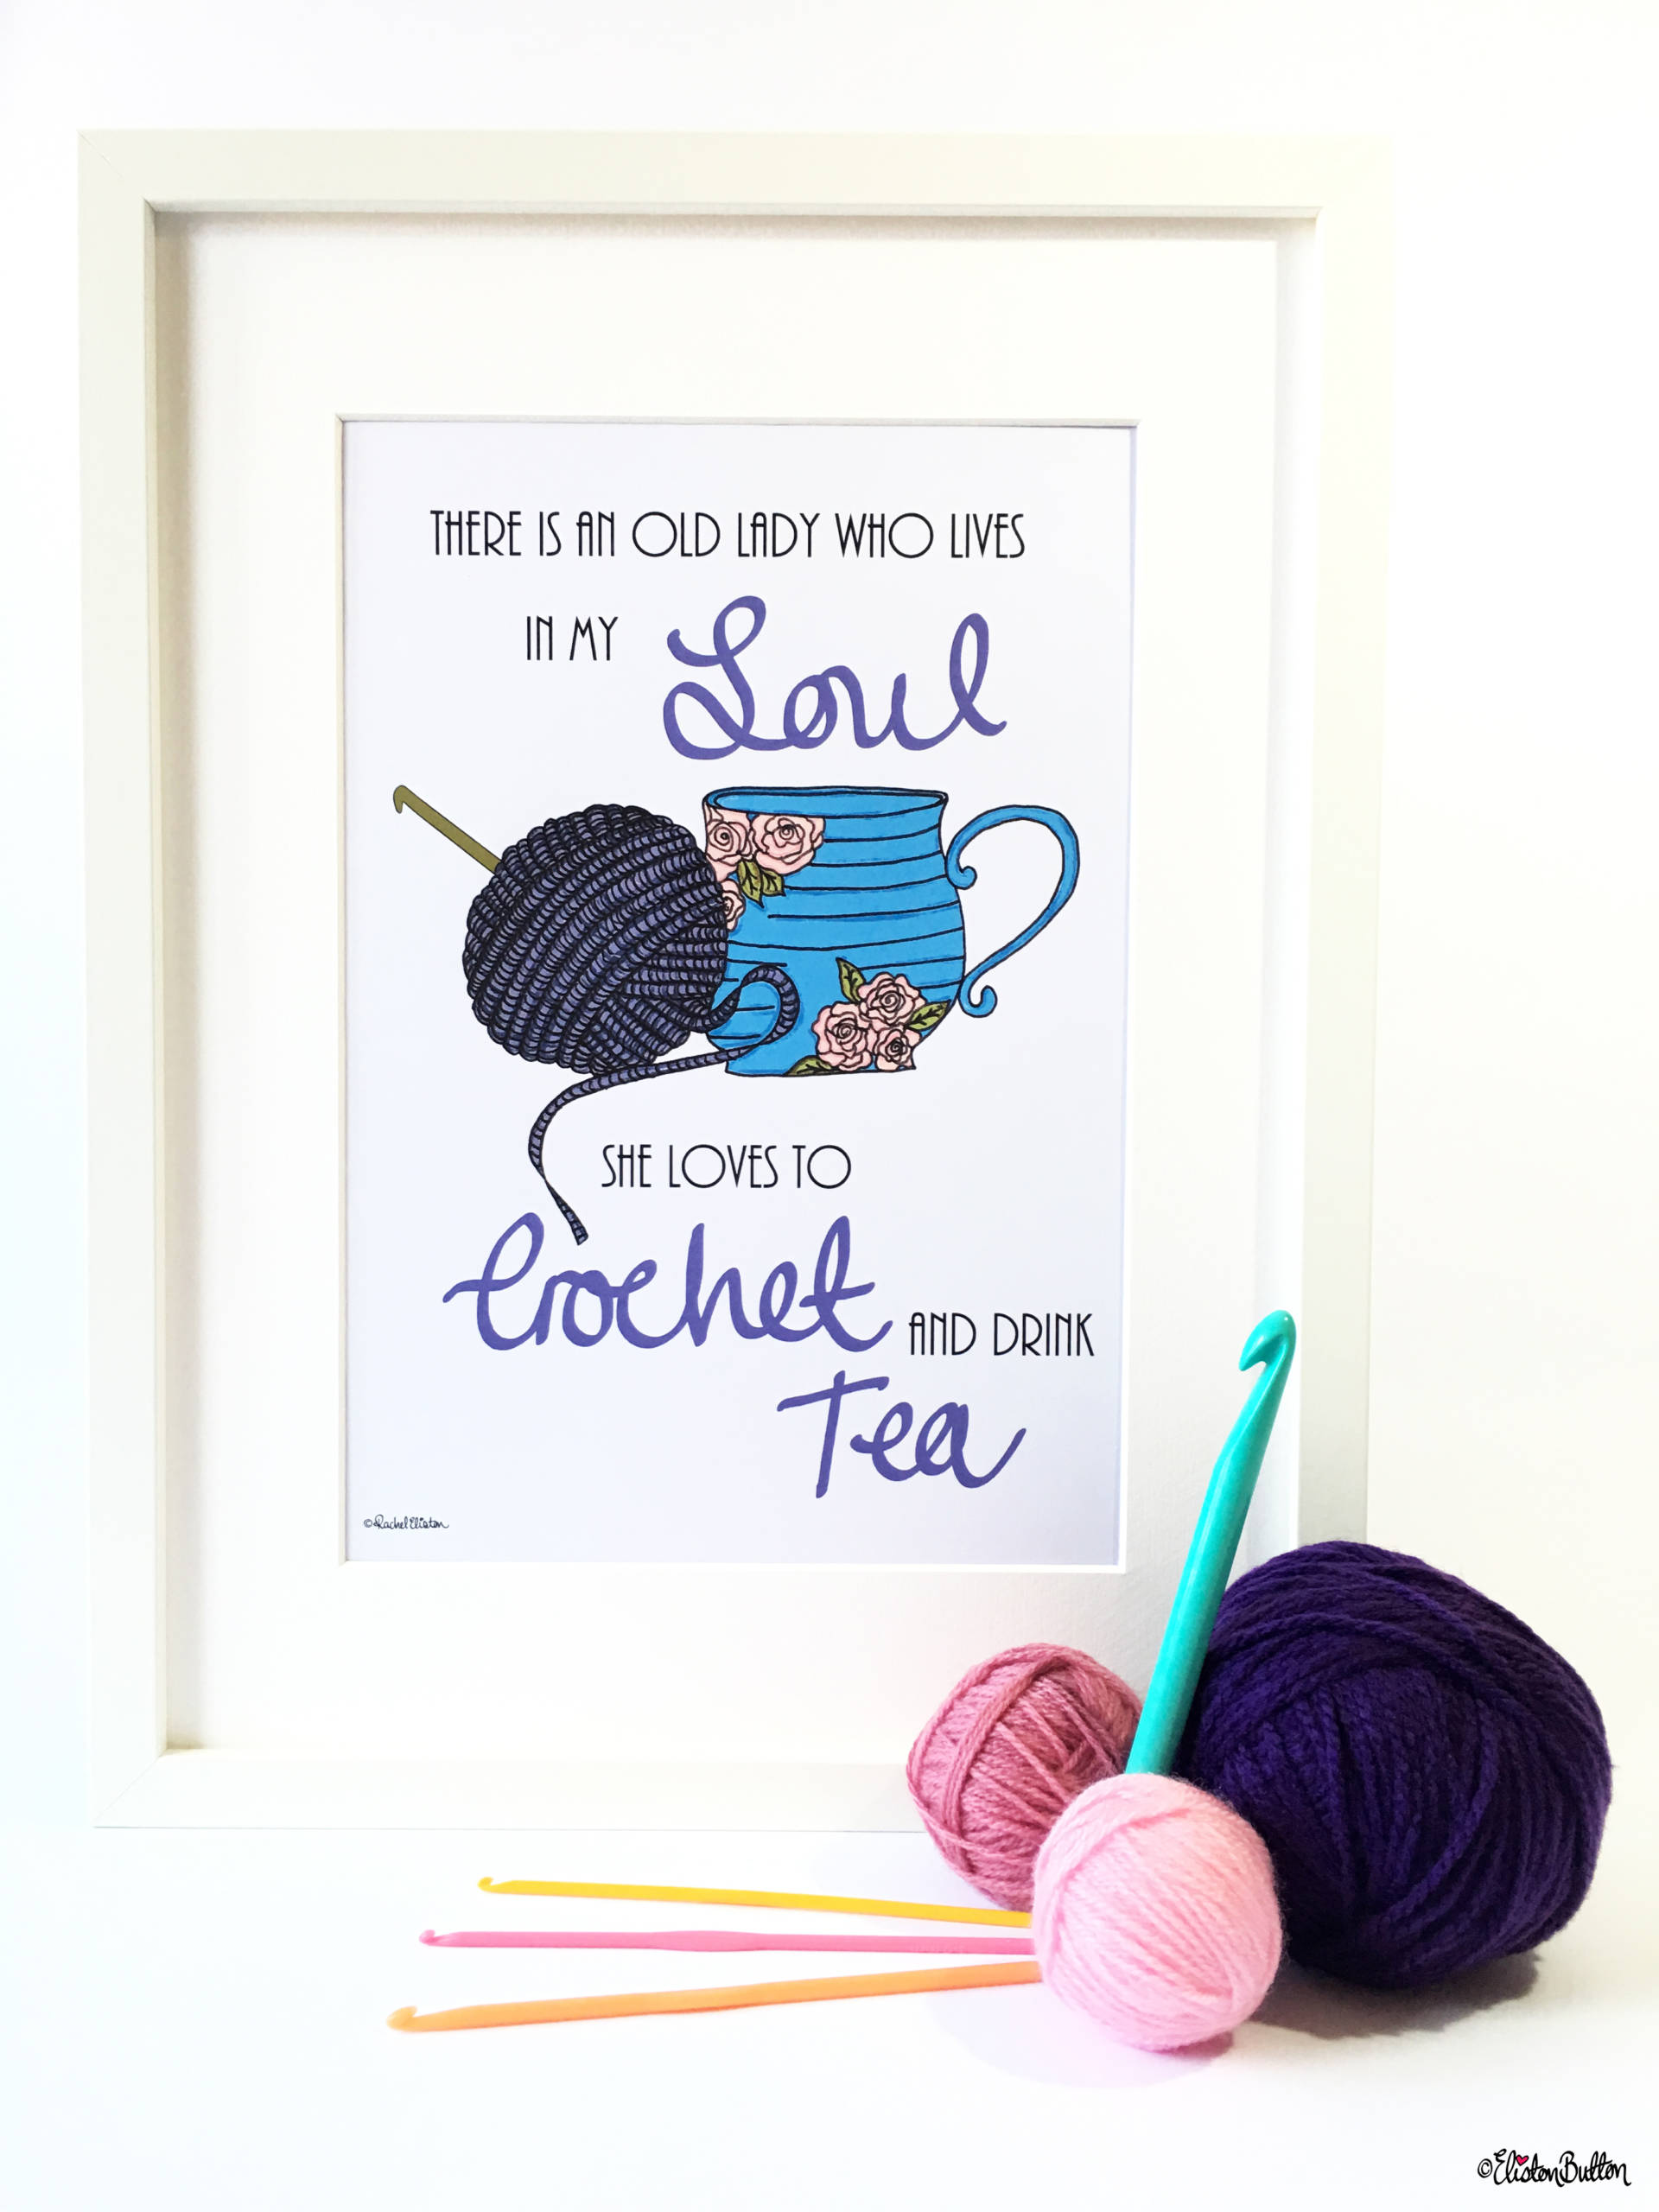 Crochet and Drink Tea Wall Art Print by Eliston Button with Balls of Yarn and Crochet Hooks - Create 30 – No. 3 & 4 – Crochet Illustrated Quote Prints at www.elistonbutton.com - Eliston Button - That Crafty Kid – Art, Design, Craft & Adventure.